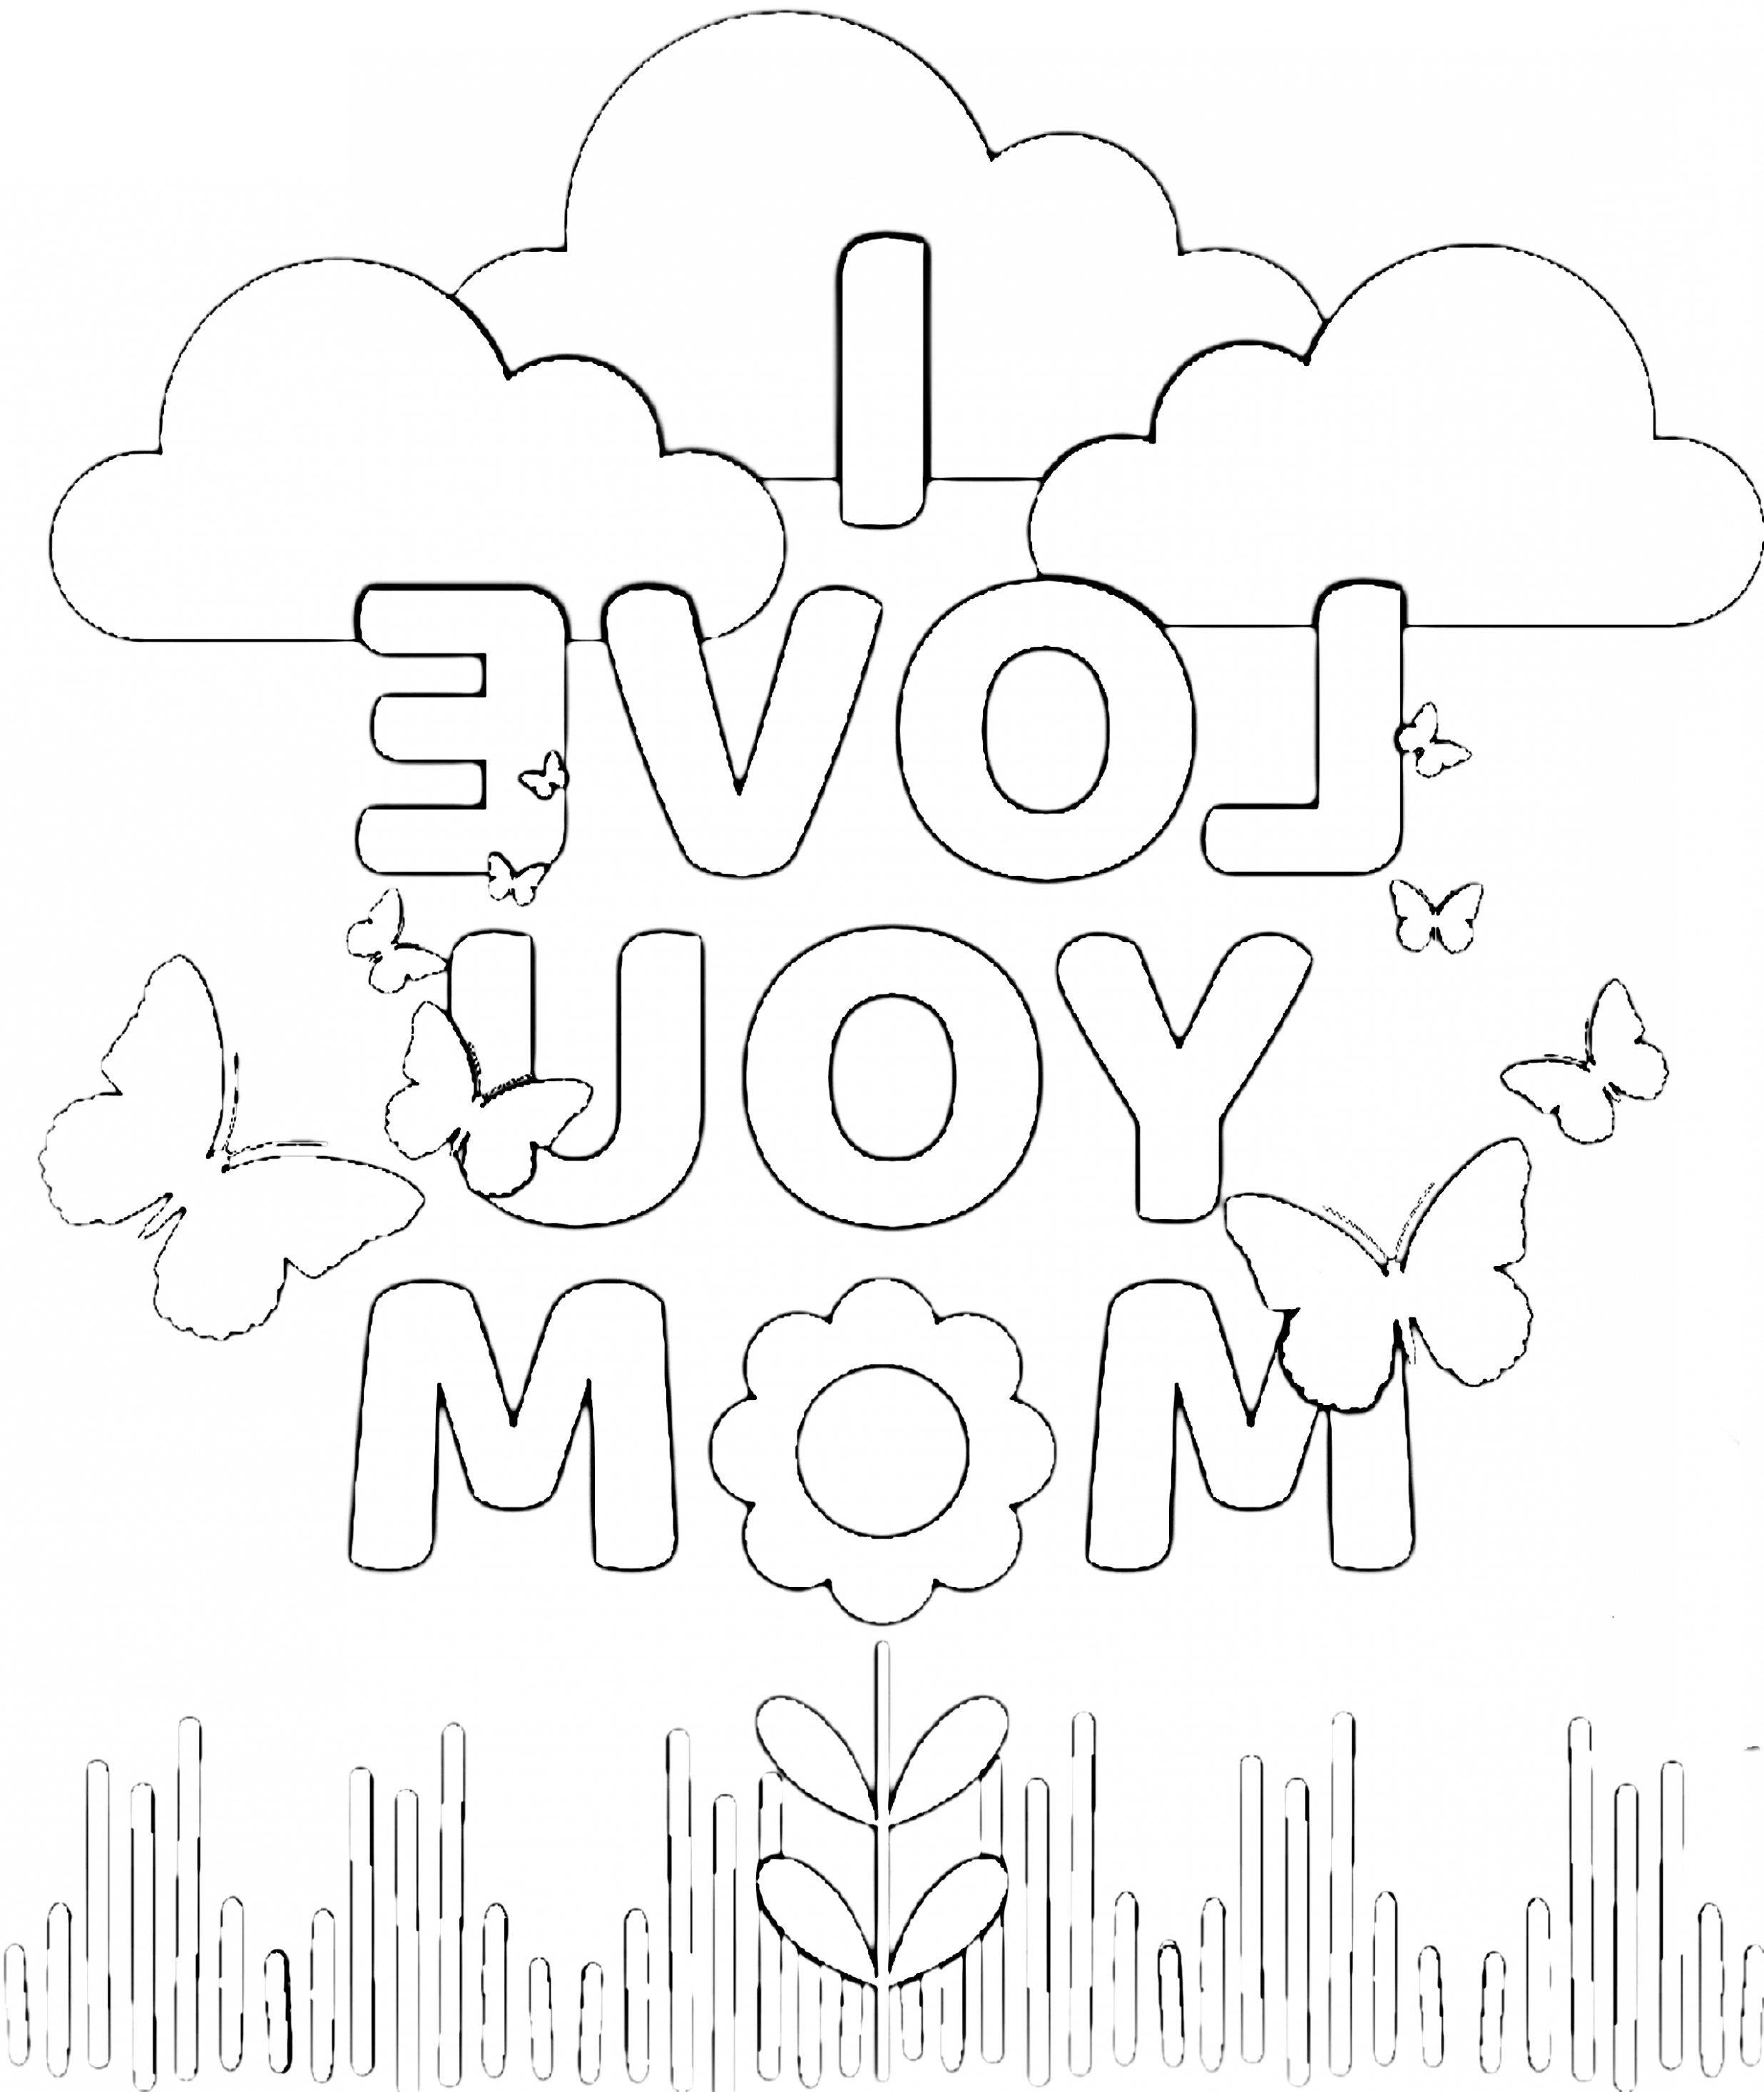 15 New Thoughts About Coloring Pages For Your Mom That Will Turn Your World Upside Mom Coloring Pages Mothers Day Coloring Pages Free Printable Birthday Cards